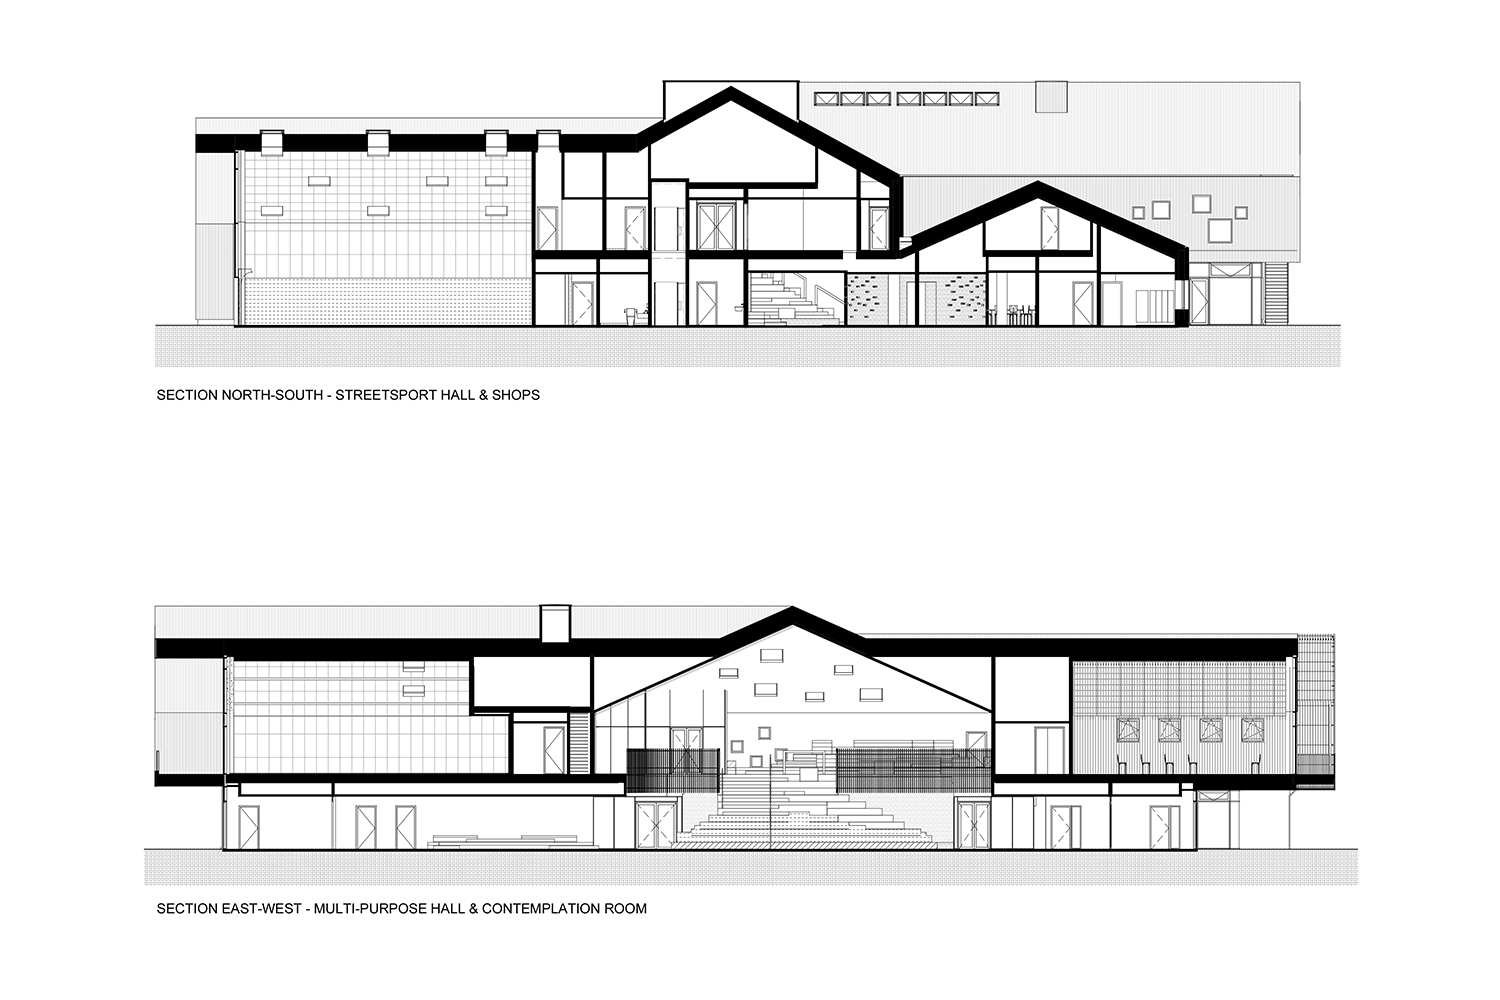 Sections_East-West C.F. Møller Architects}